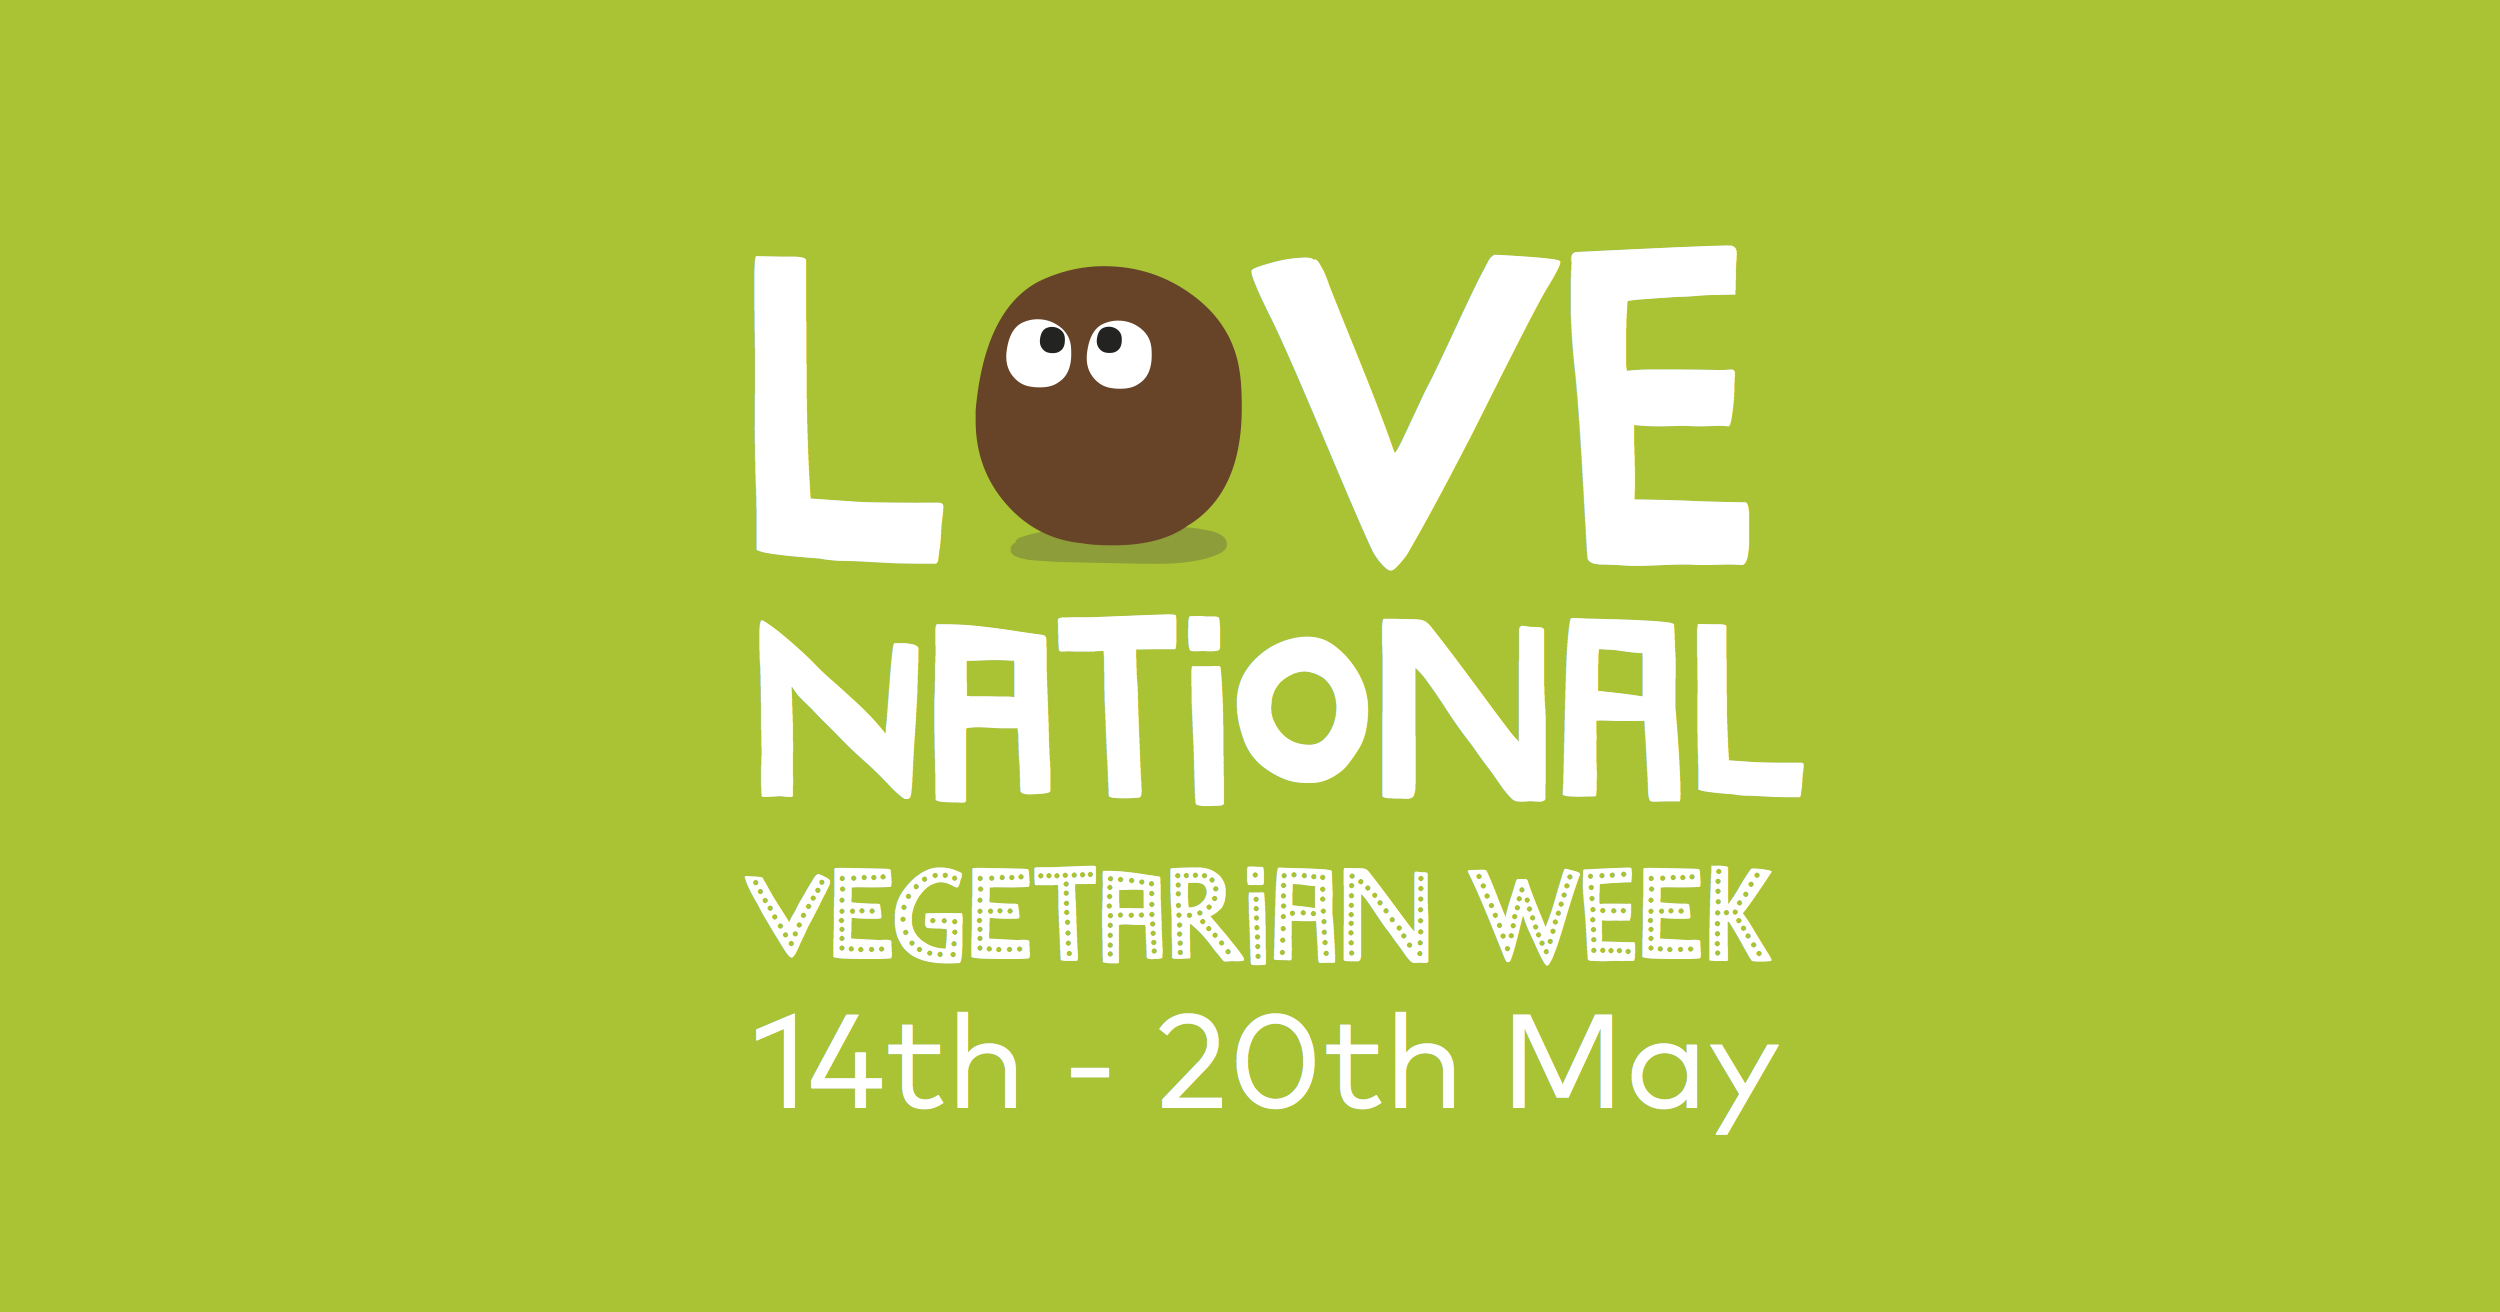 National Vegetarian Week 2018 | The Protein Ball Co